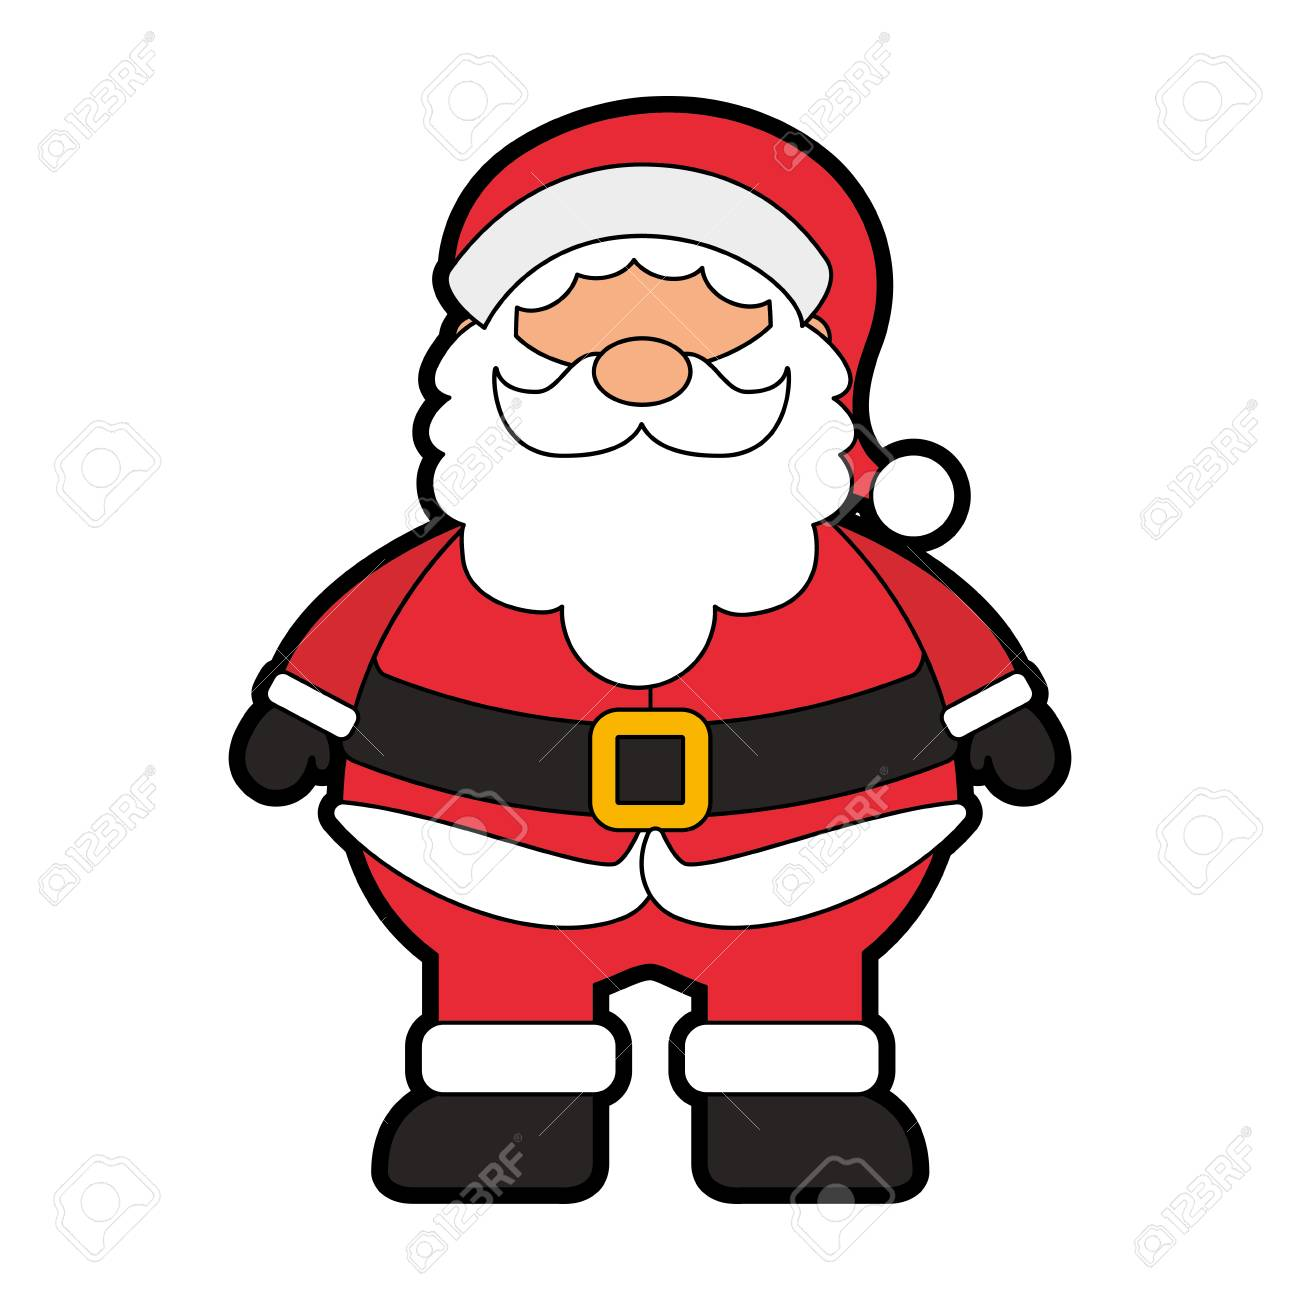 christmas santa claus icon vector illustration graphic design royalty free cliparts vectors and stock illustration image 78519515 christmas santa claus icon vector illustration graphic design